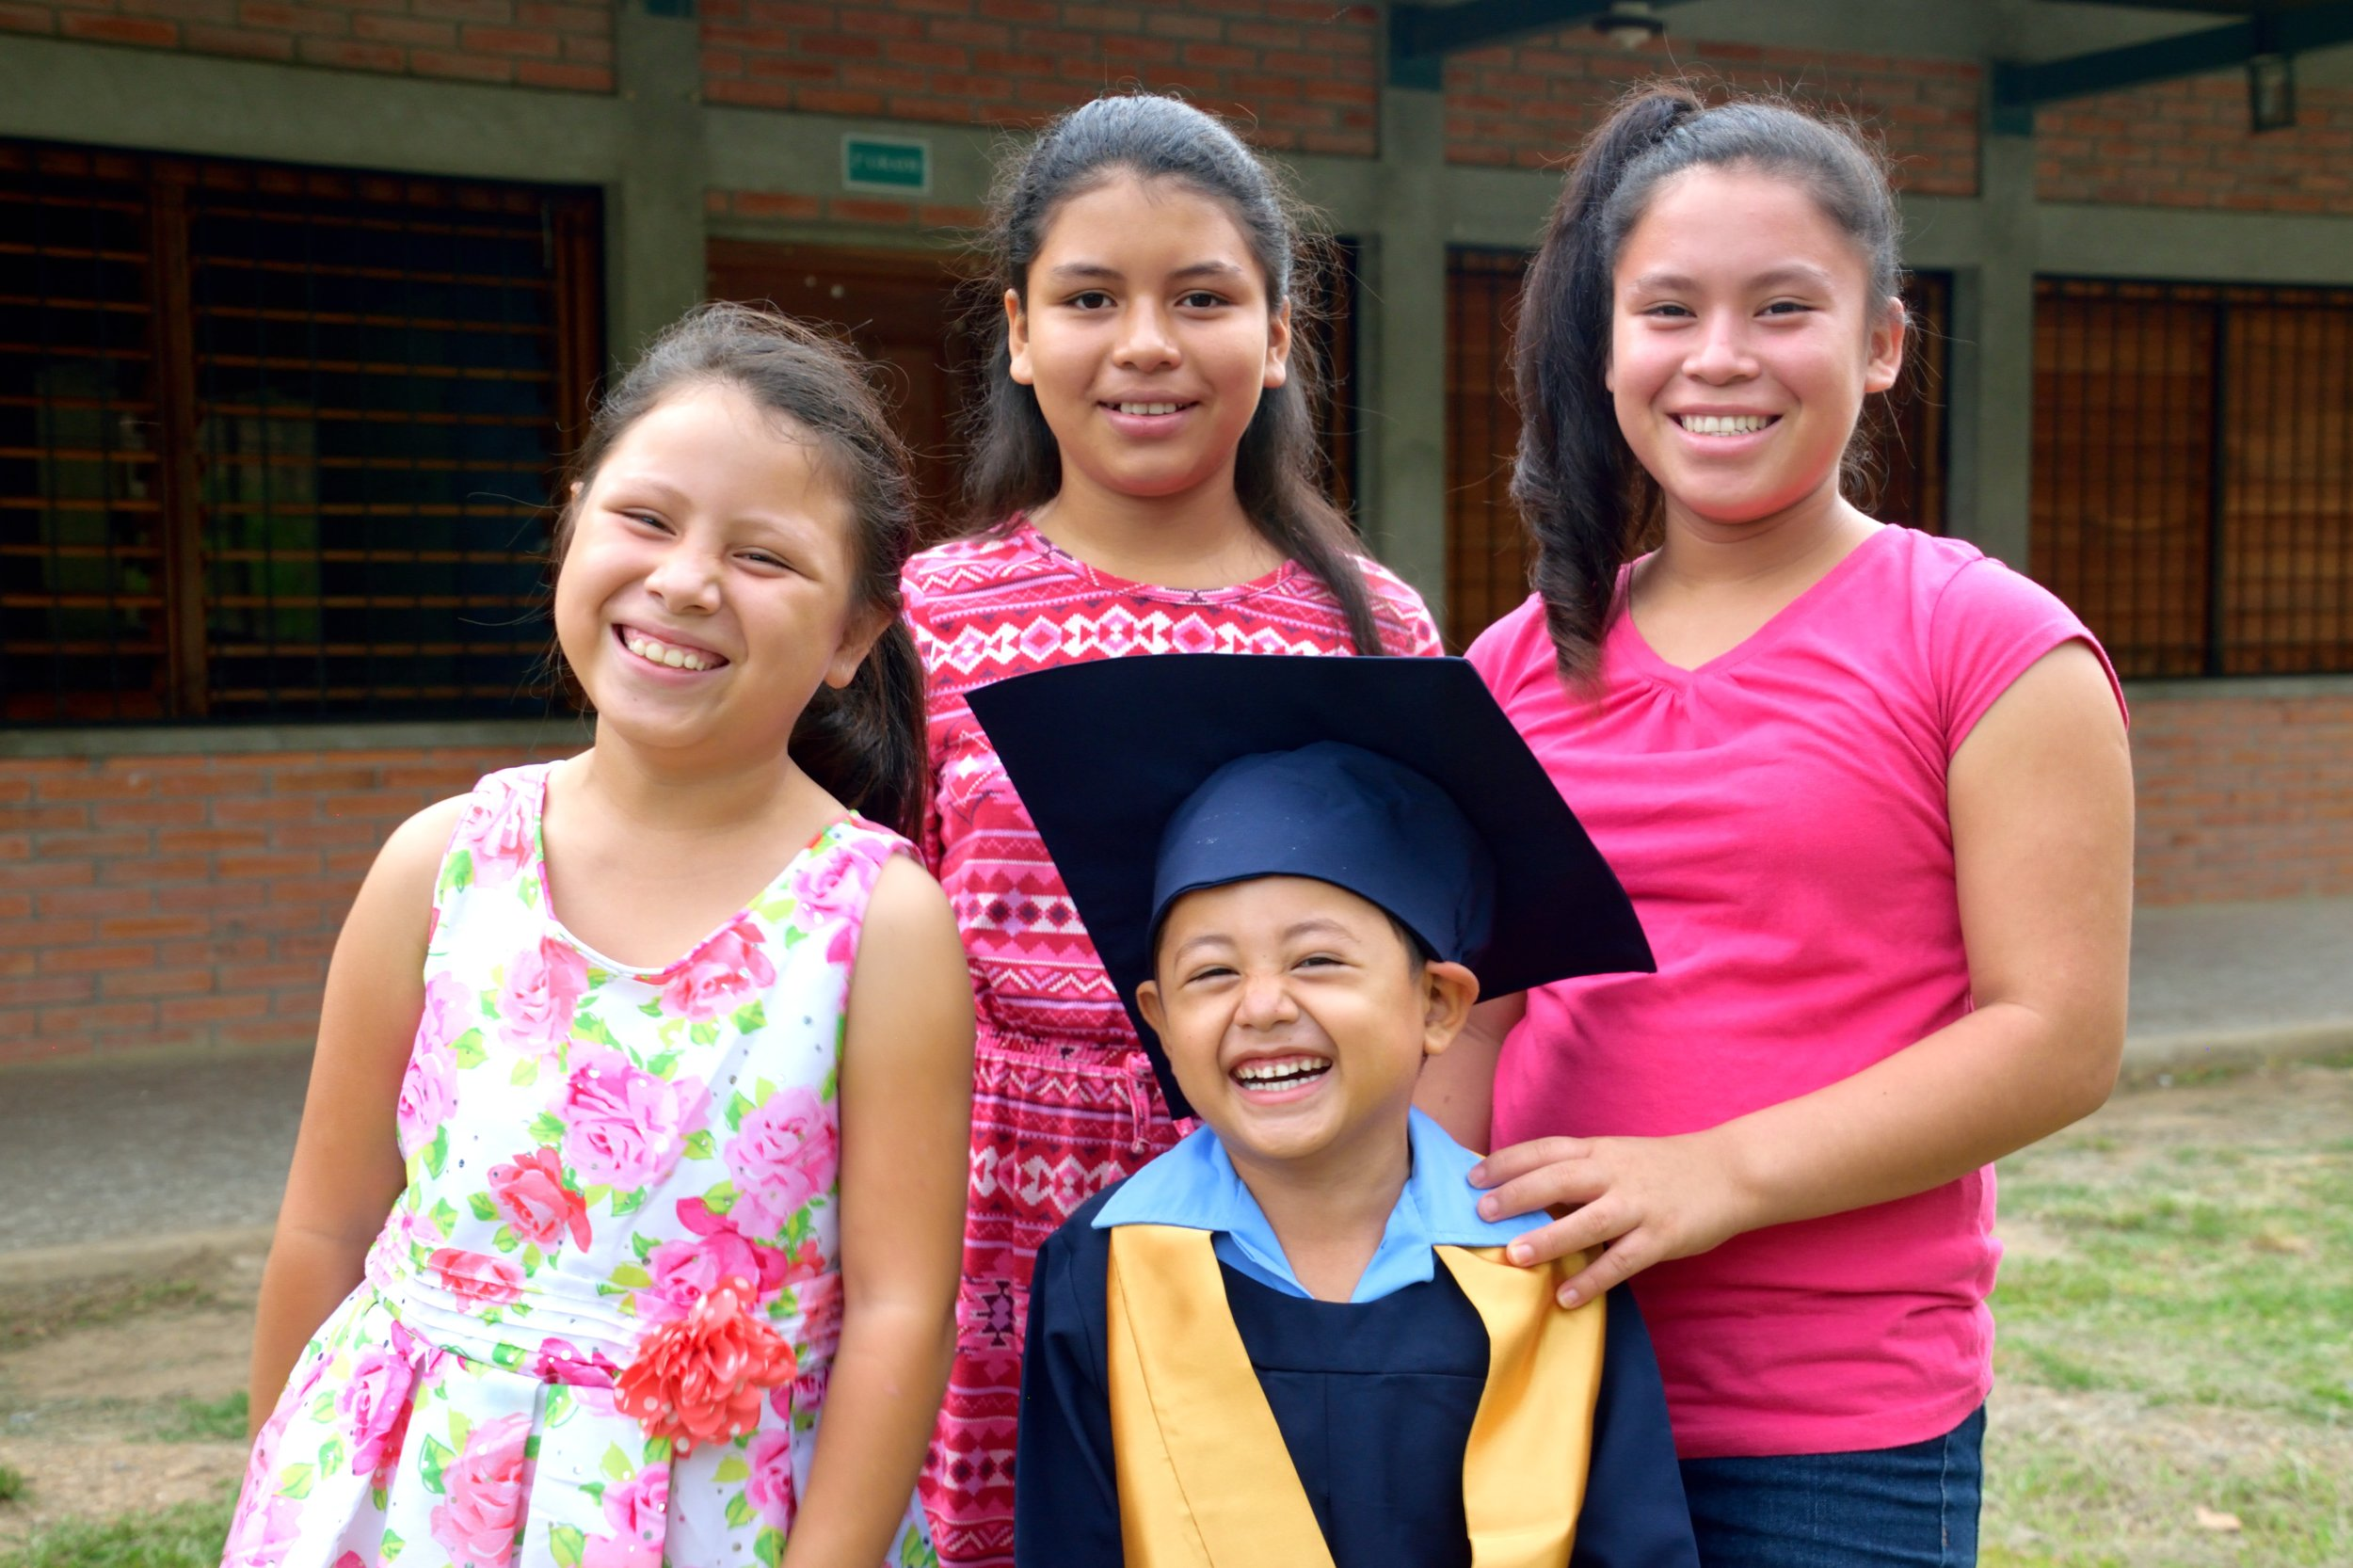 Virginia (pictured on the far right) with her two sisters celebrating their youngest brother's graduation from Prepa (Kindergarten) last May.